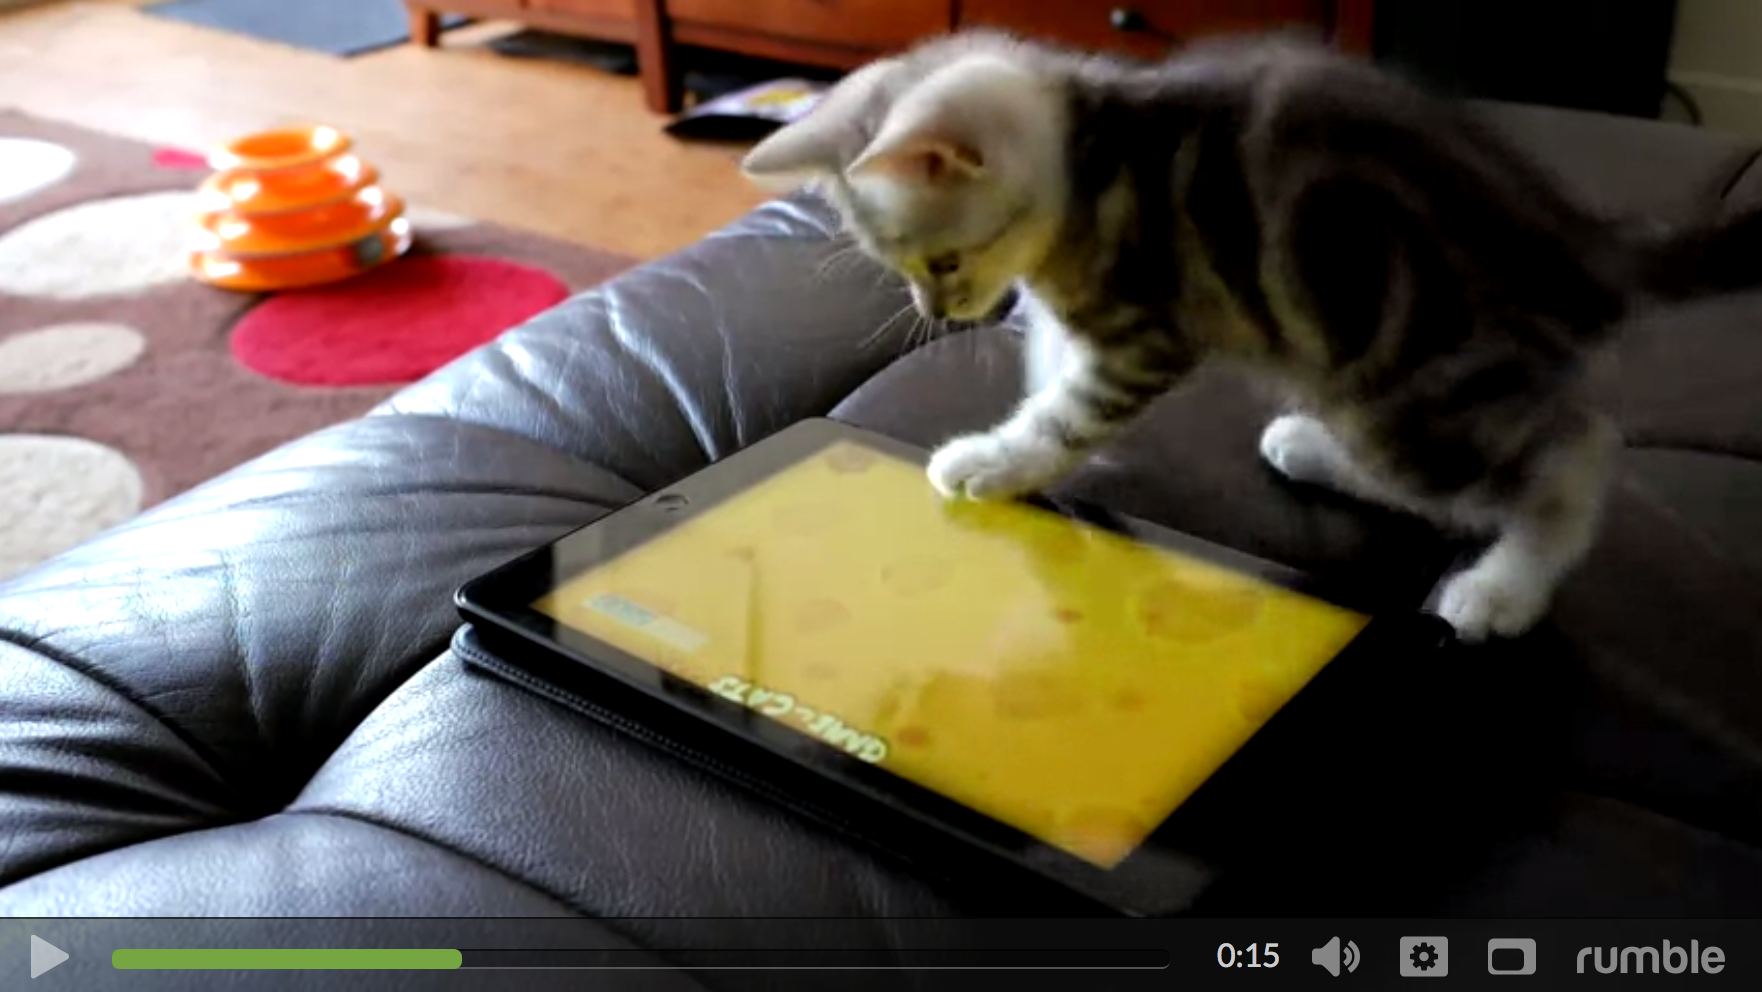 An adorable video of a cute kitten playing with an ipad.